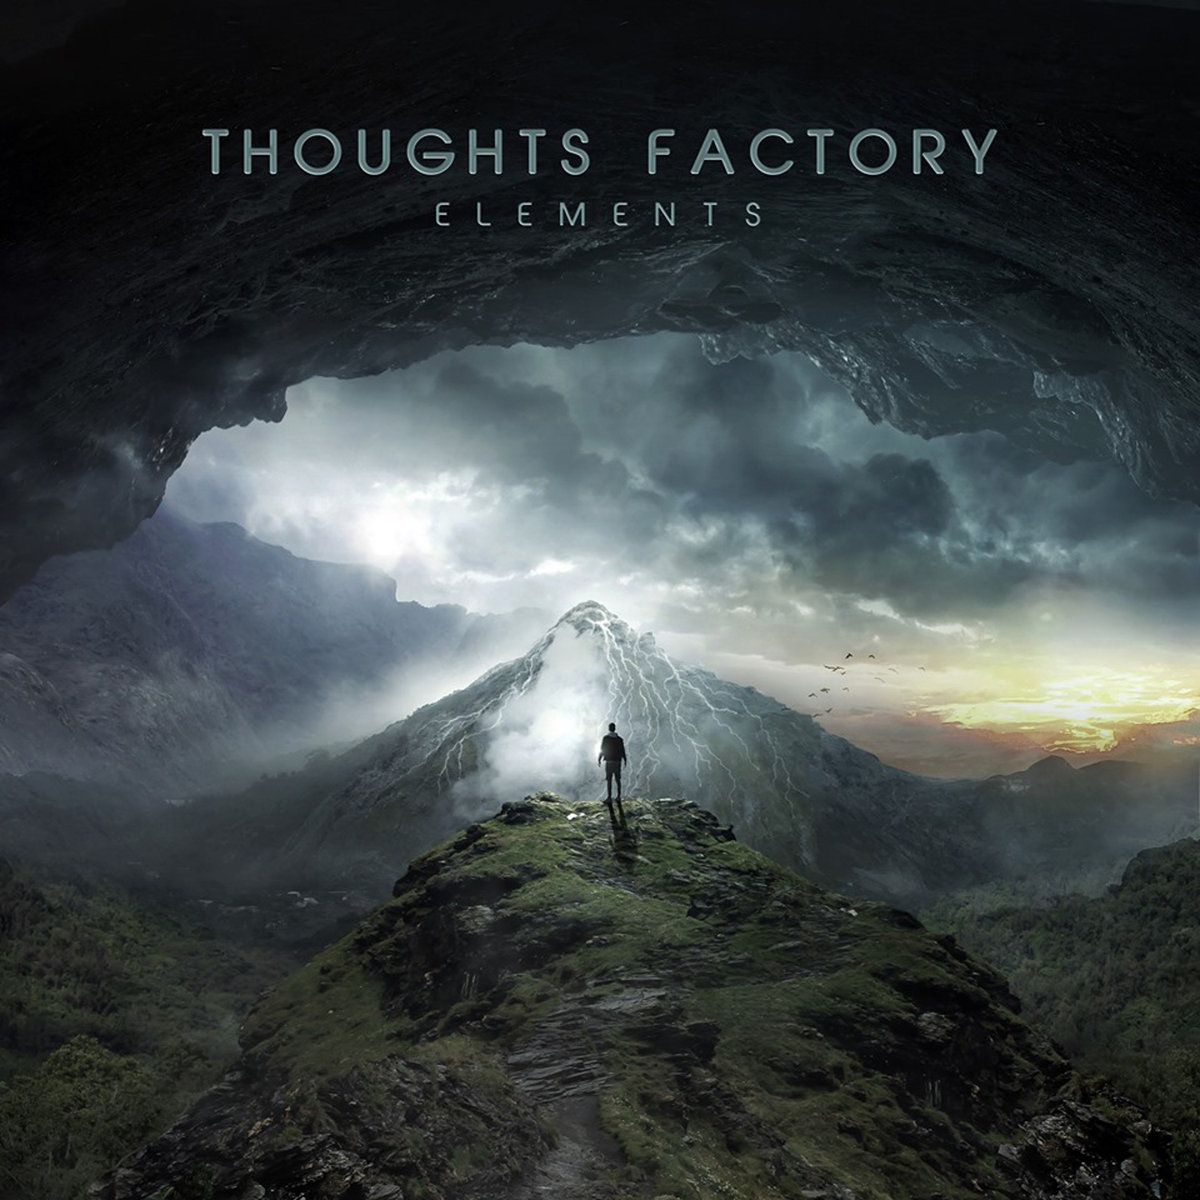 thoughts factory-elements